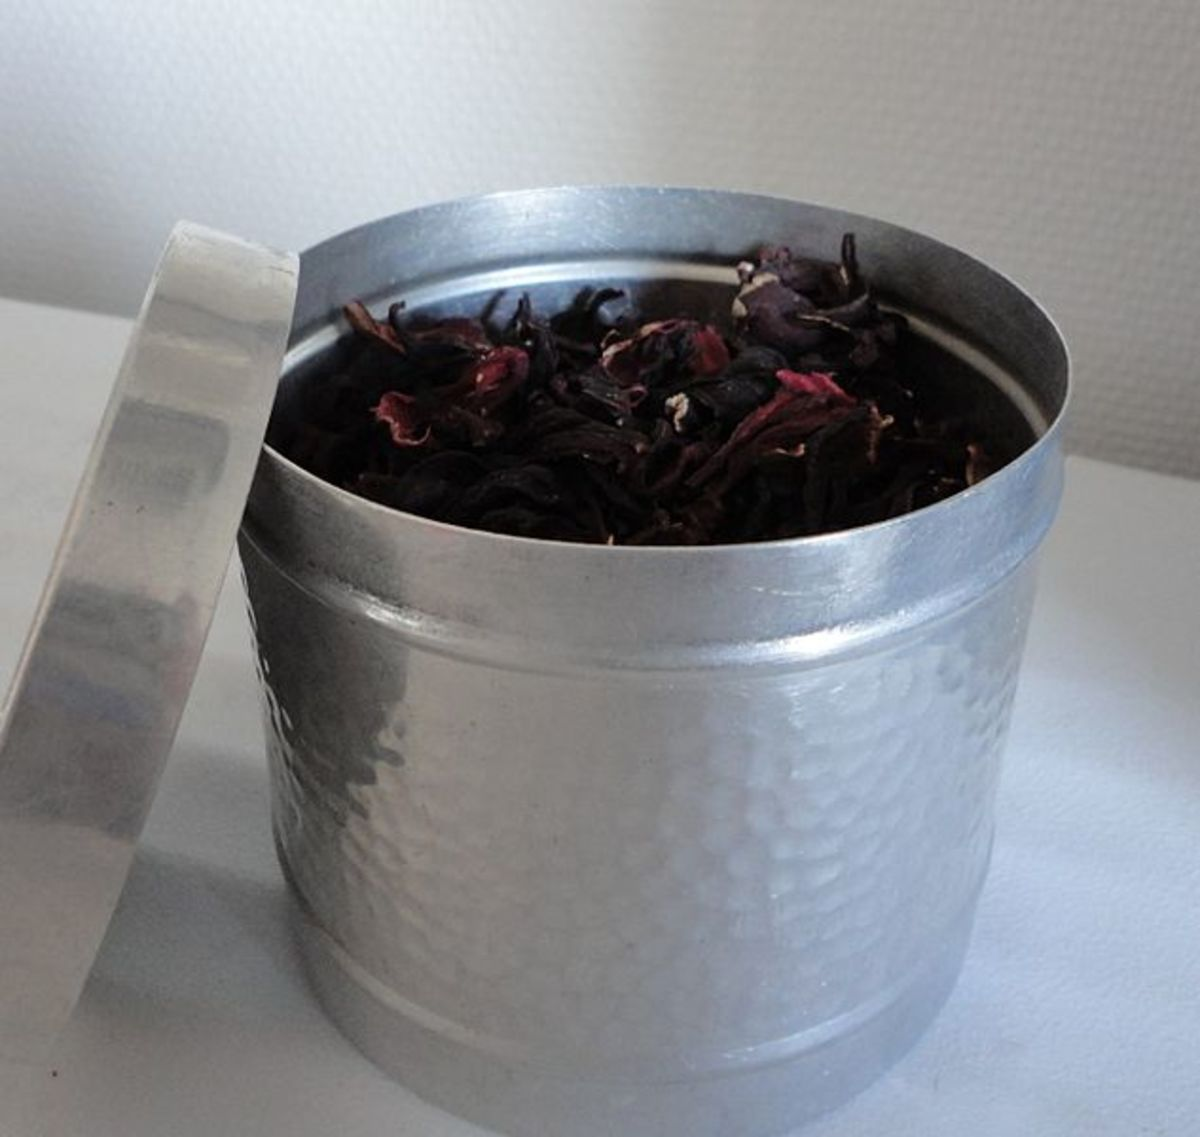 Sipping on dried hibiscus flower tea throughout the day can really help fight free radicals in the body.  This in turn helps minimize their damage to the body including the brain, over time.